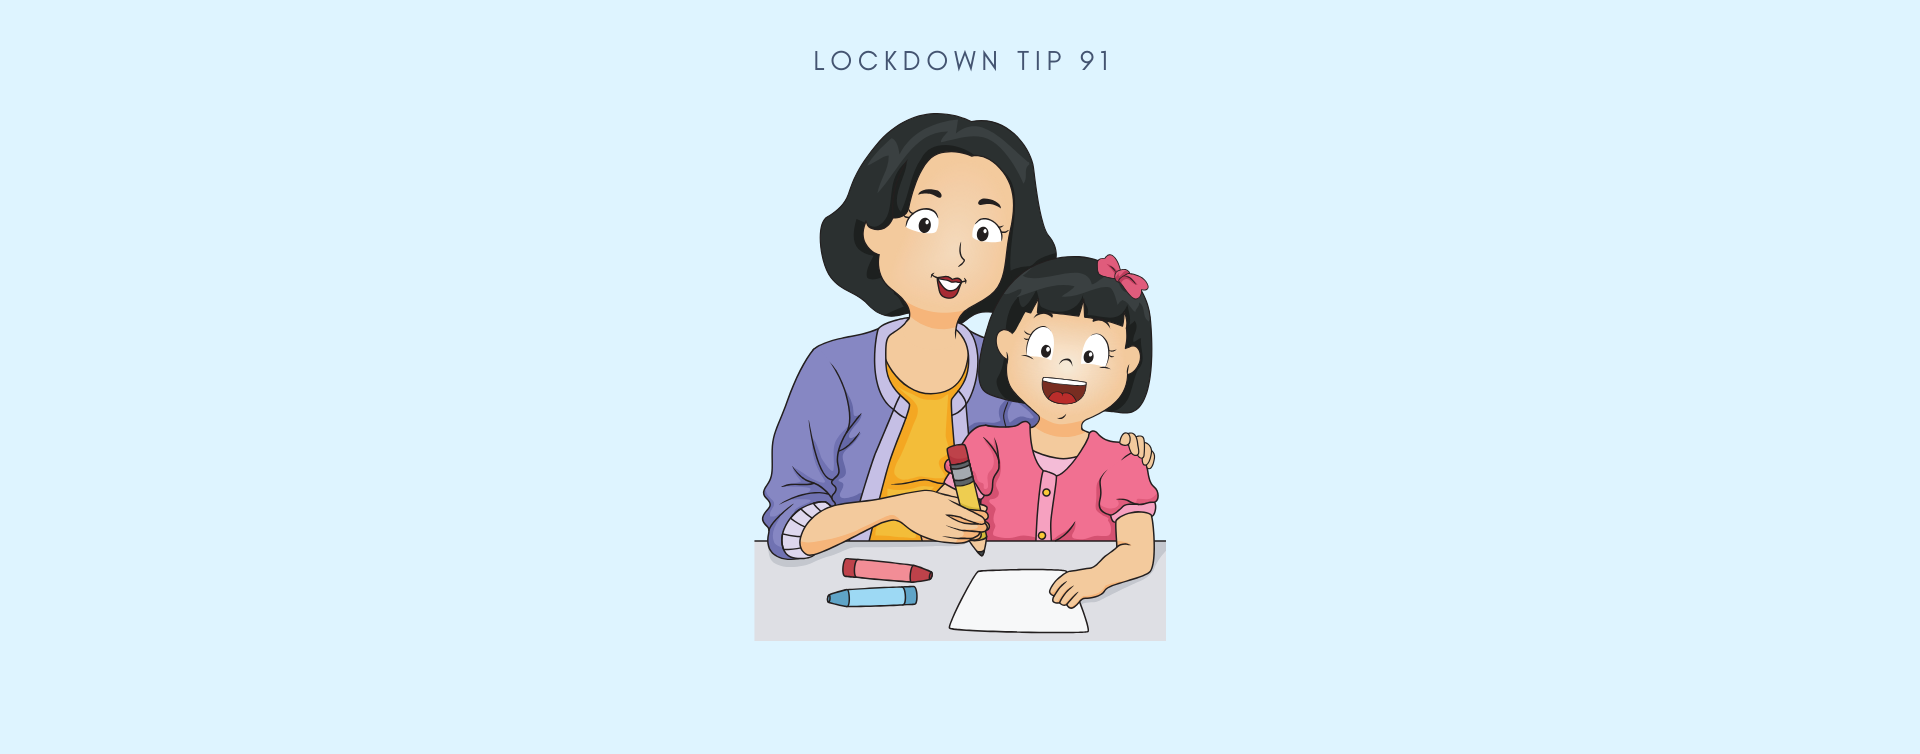 MCSA Lockdown Tip 91